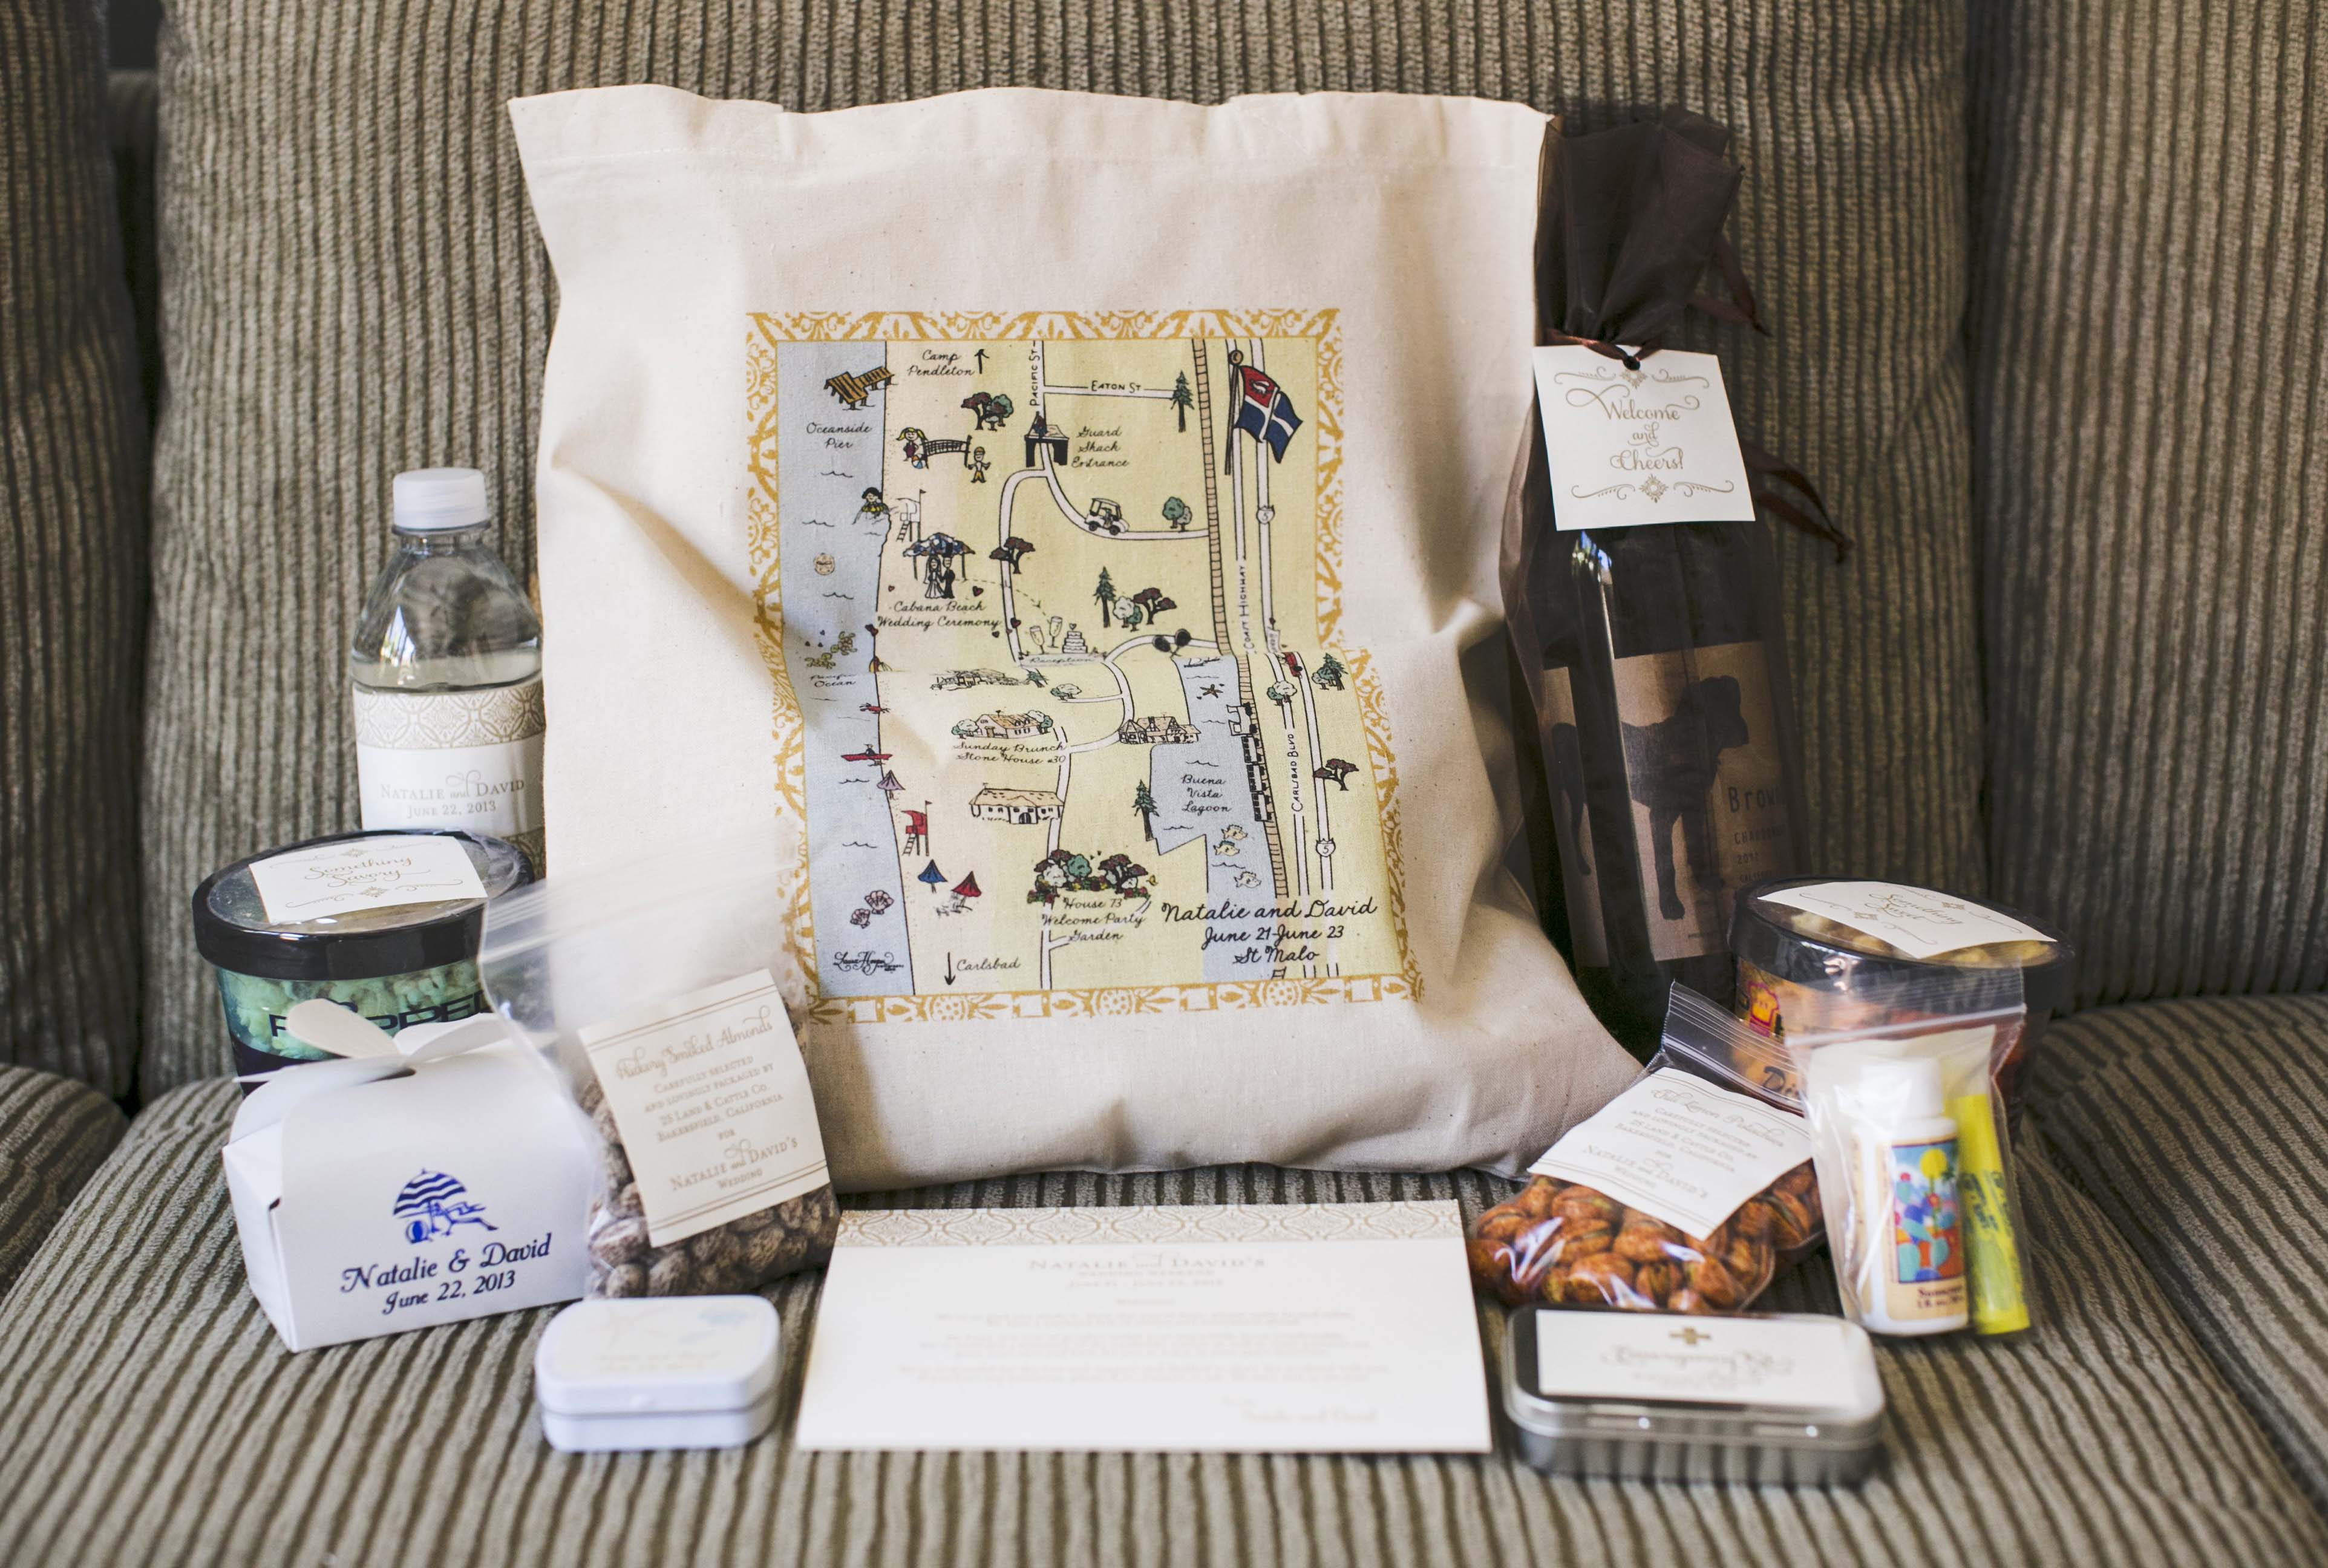 Wedding Fair Gift Bag Ideas : Wedding Welcome Bags: How You Should Pack Yours - Inside Weddings